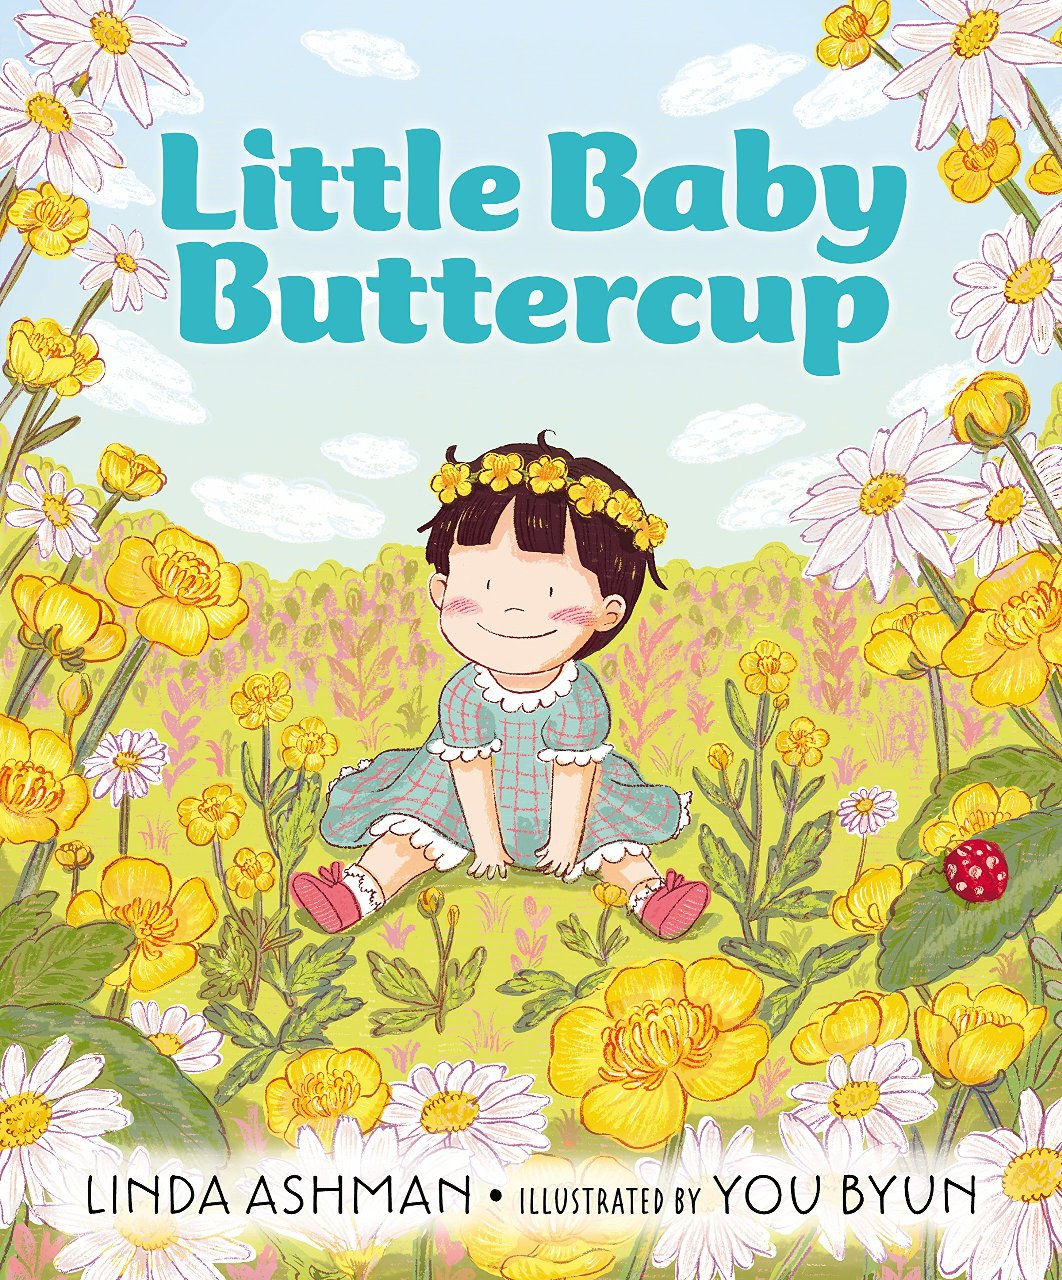 Illustrated Book Cover Generator : Little baby buttercup by linda ashman illustrated you